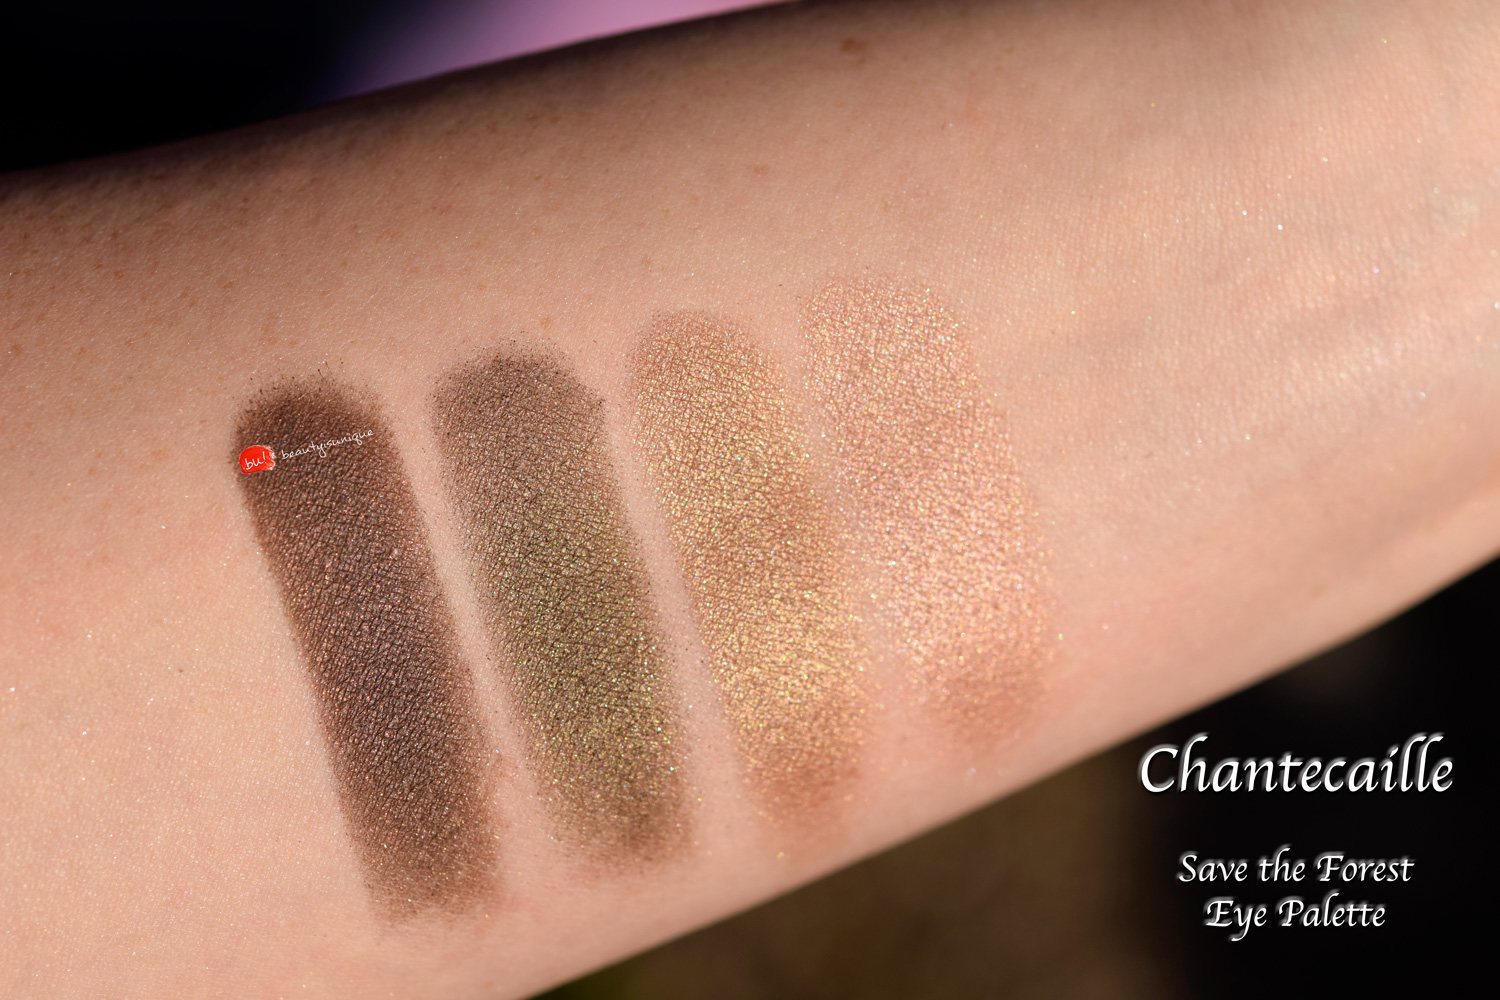 chantecaille--save-the-forest-eye-palette-swatches